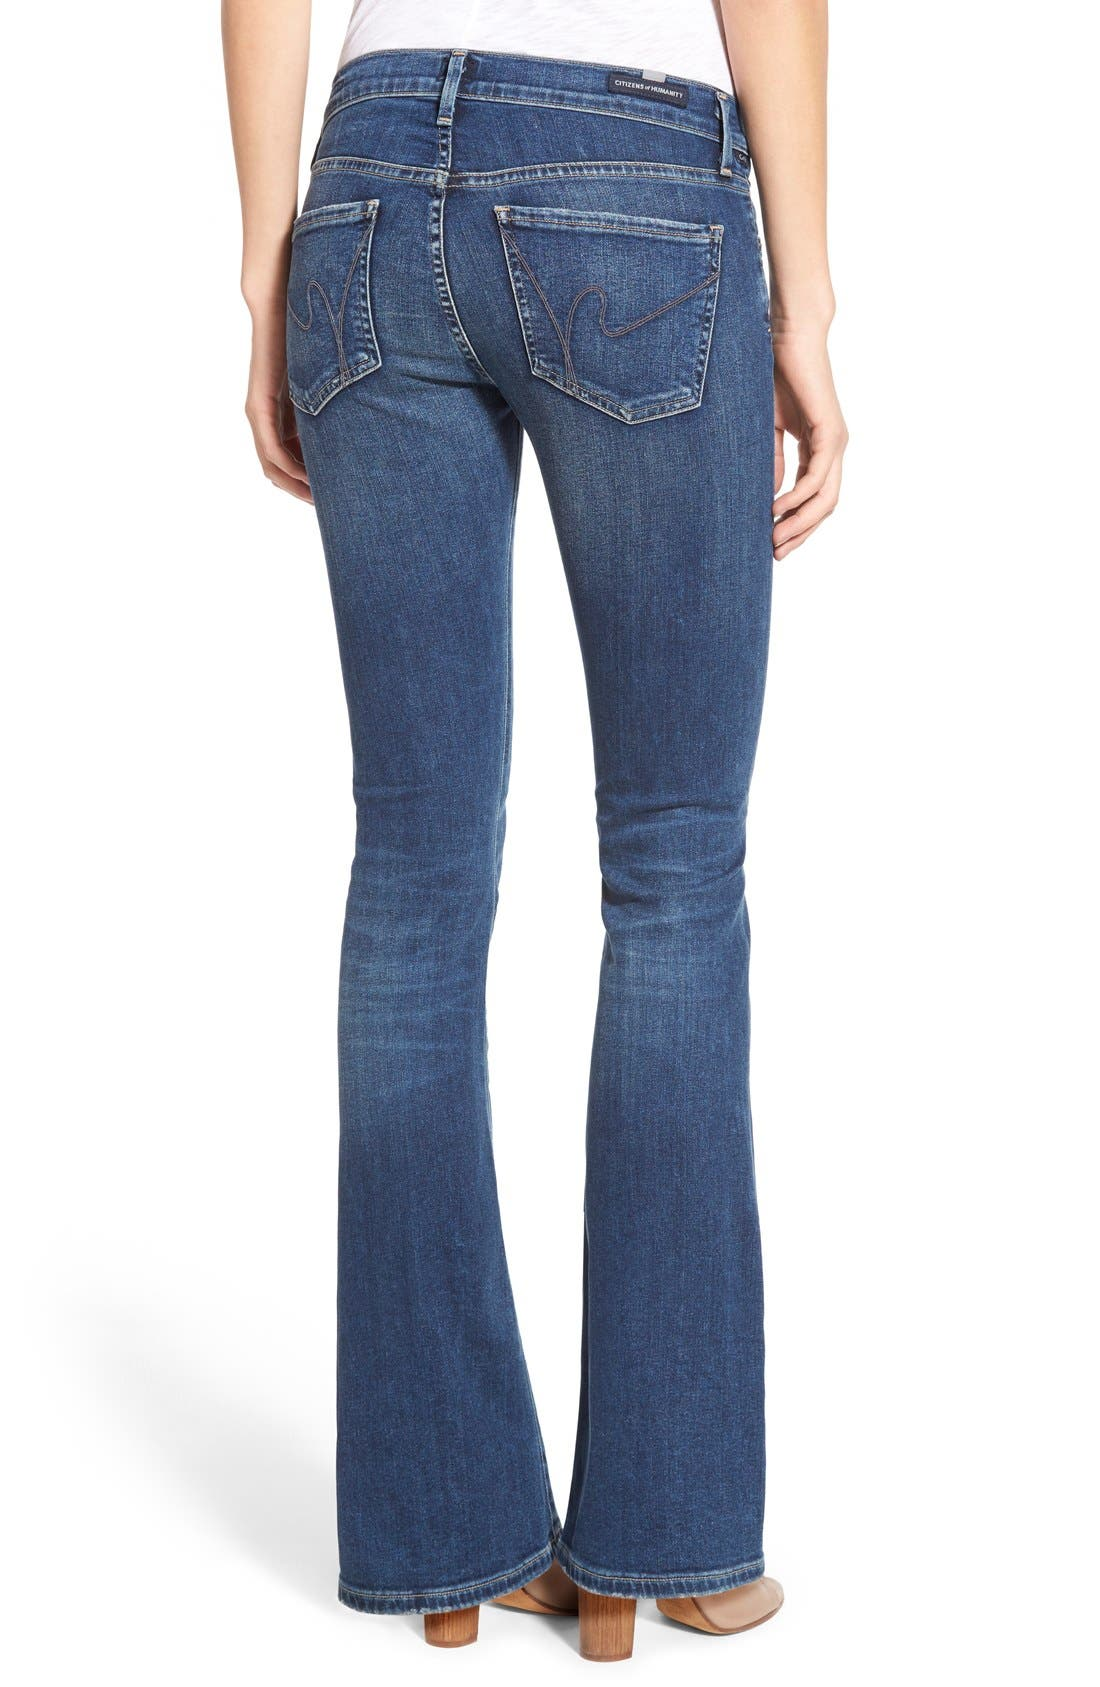 CITIZENS OF HUMANITY, 'Emannuelle' Bootcut Jeans, Alternate thumbnail 5, color, MODERN LOVE